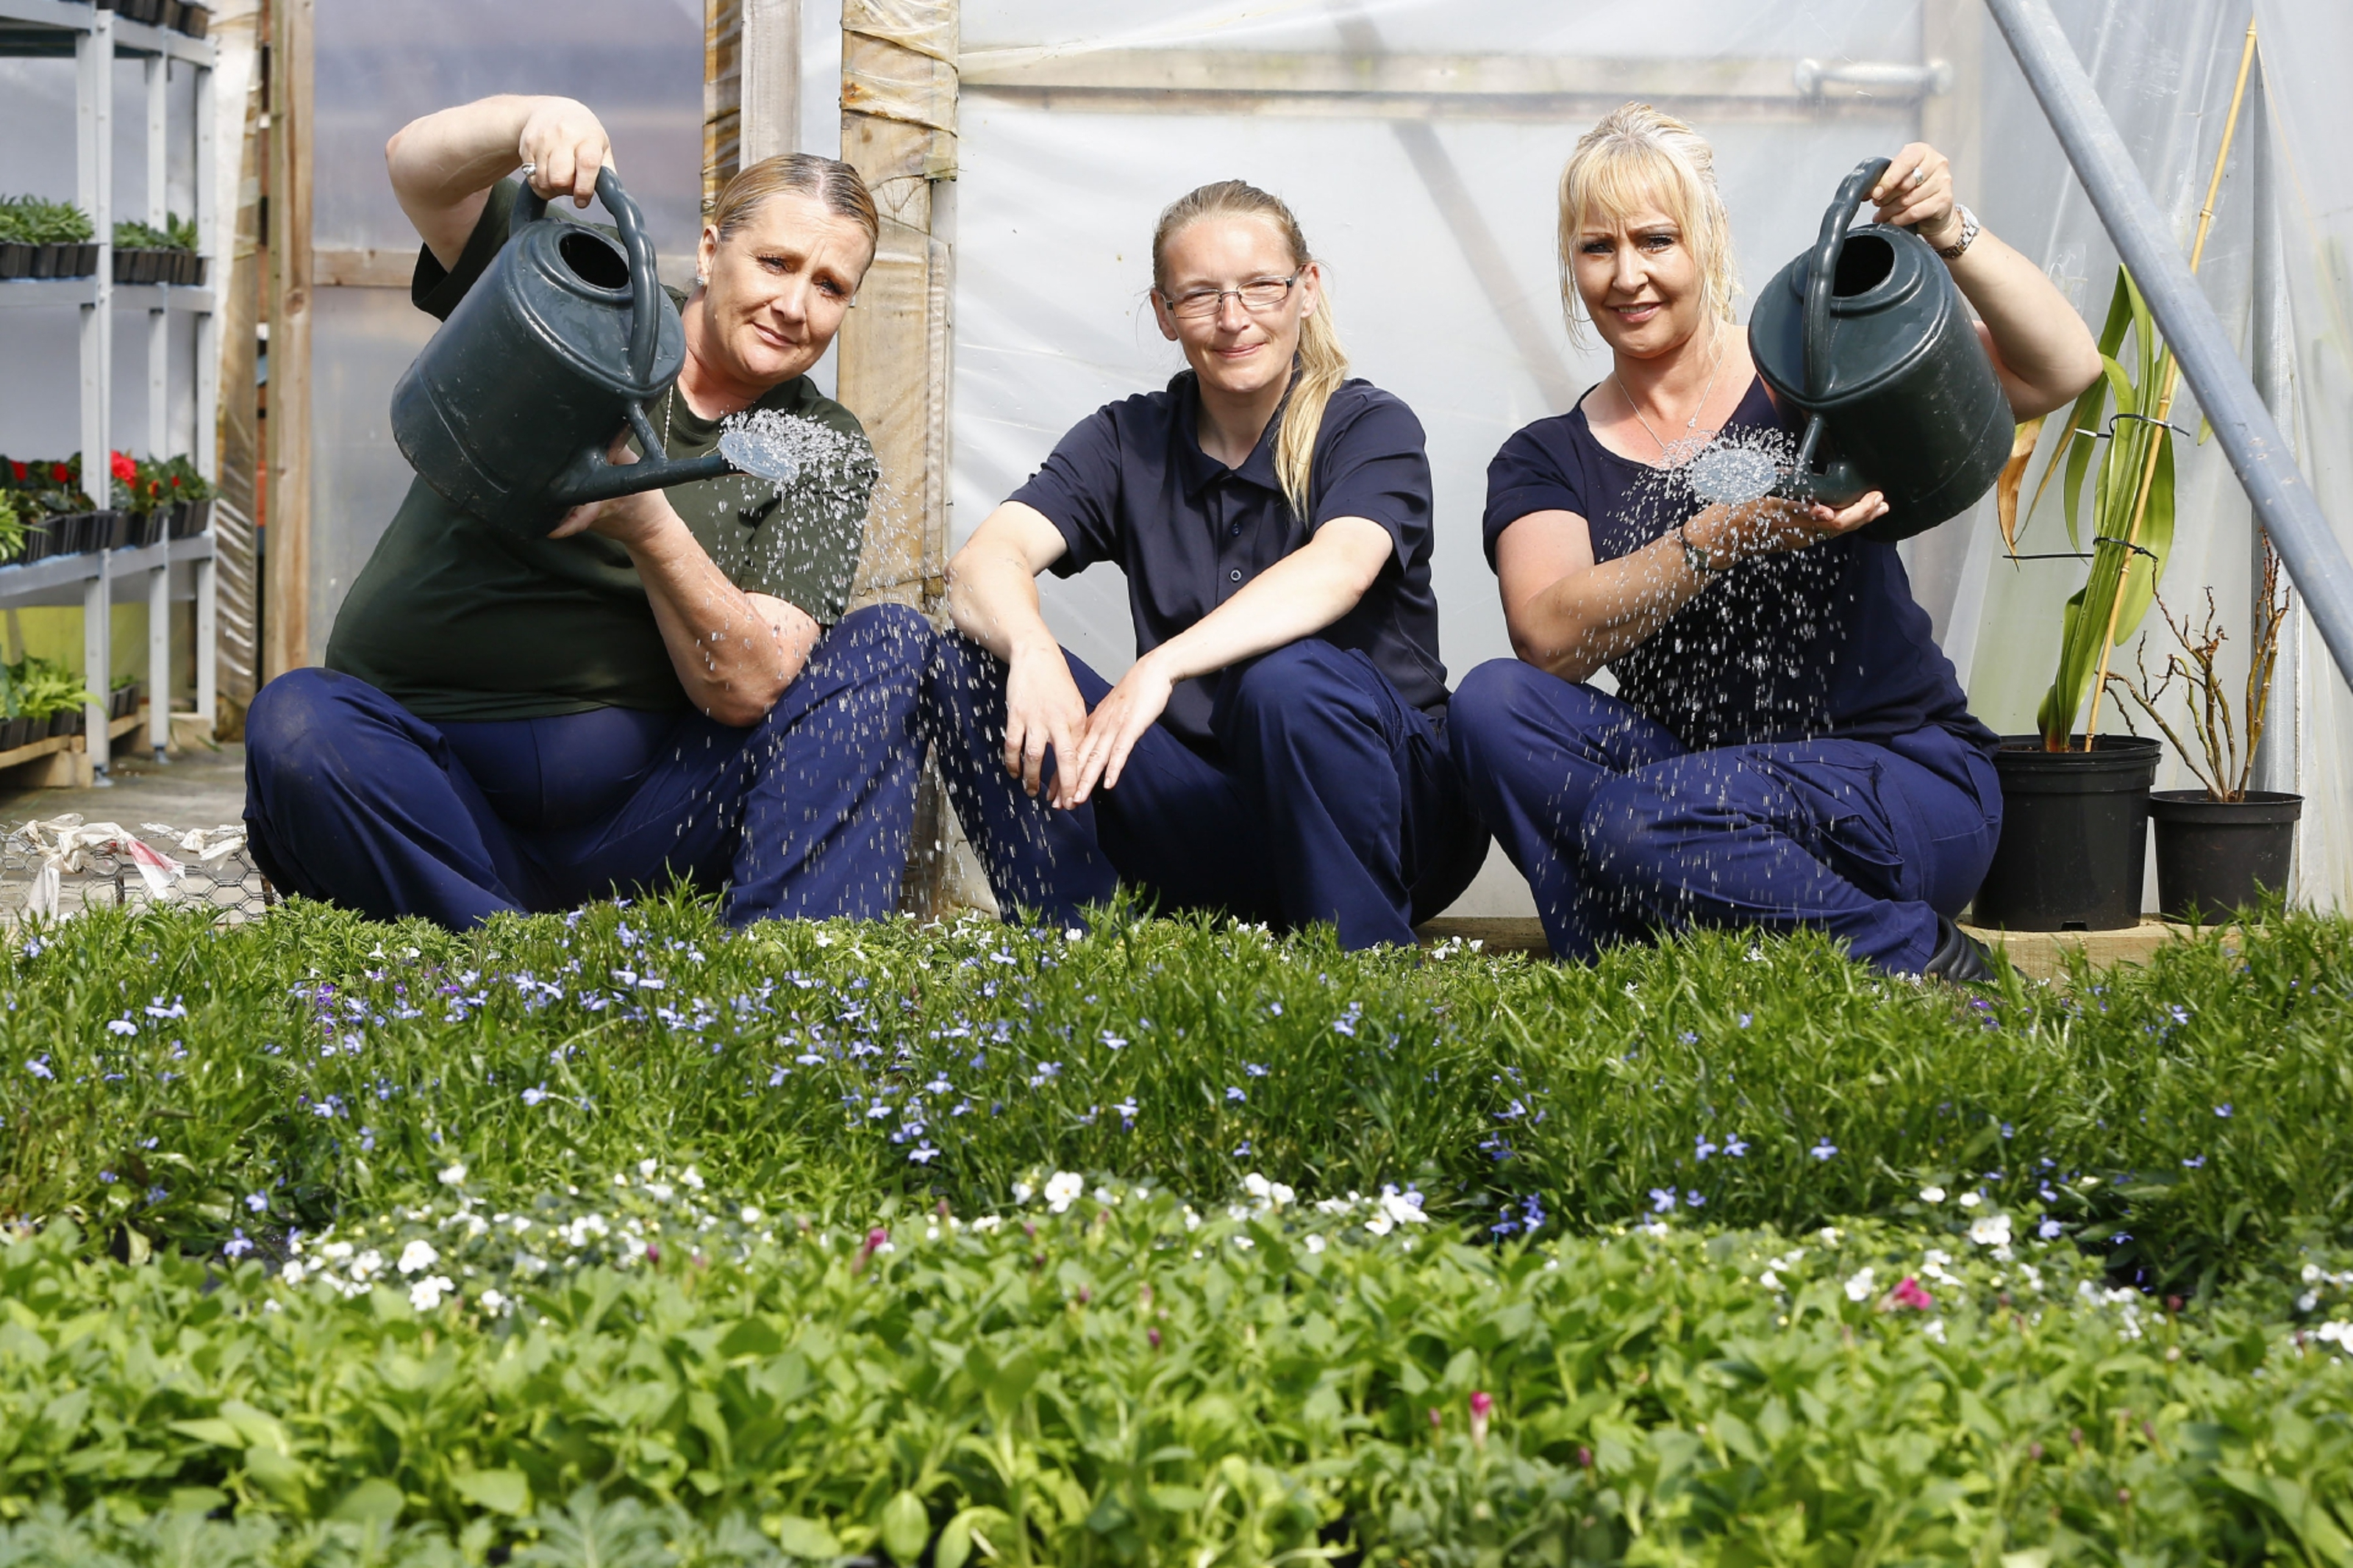 Prisoners Wendy, Dawn and Hilda water plants at Cornton Vale.